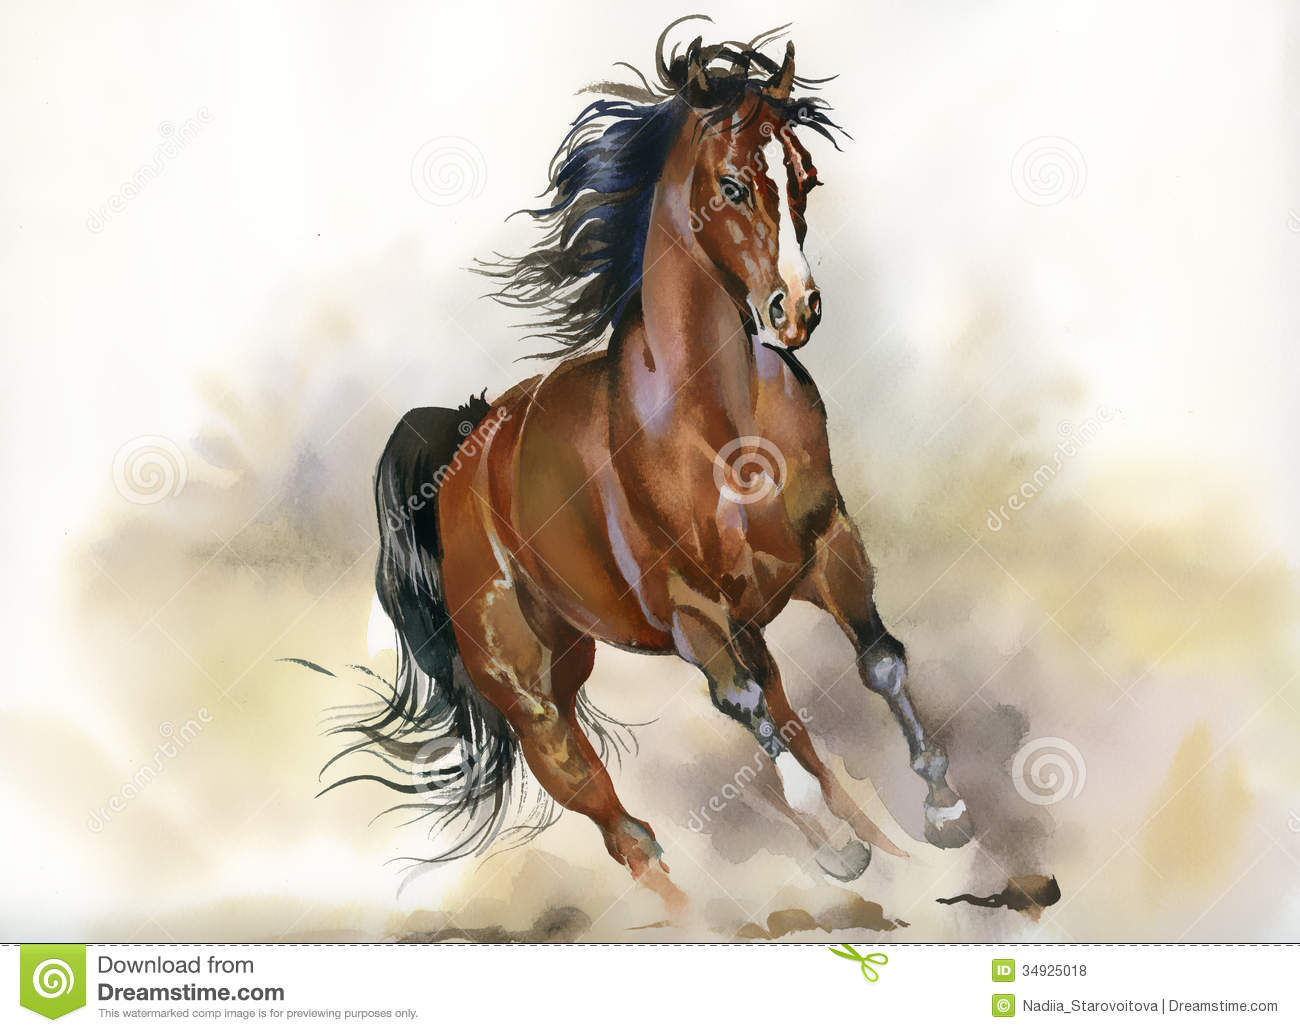 running horse royalty free stock photos - image: 34925018